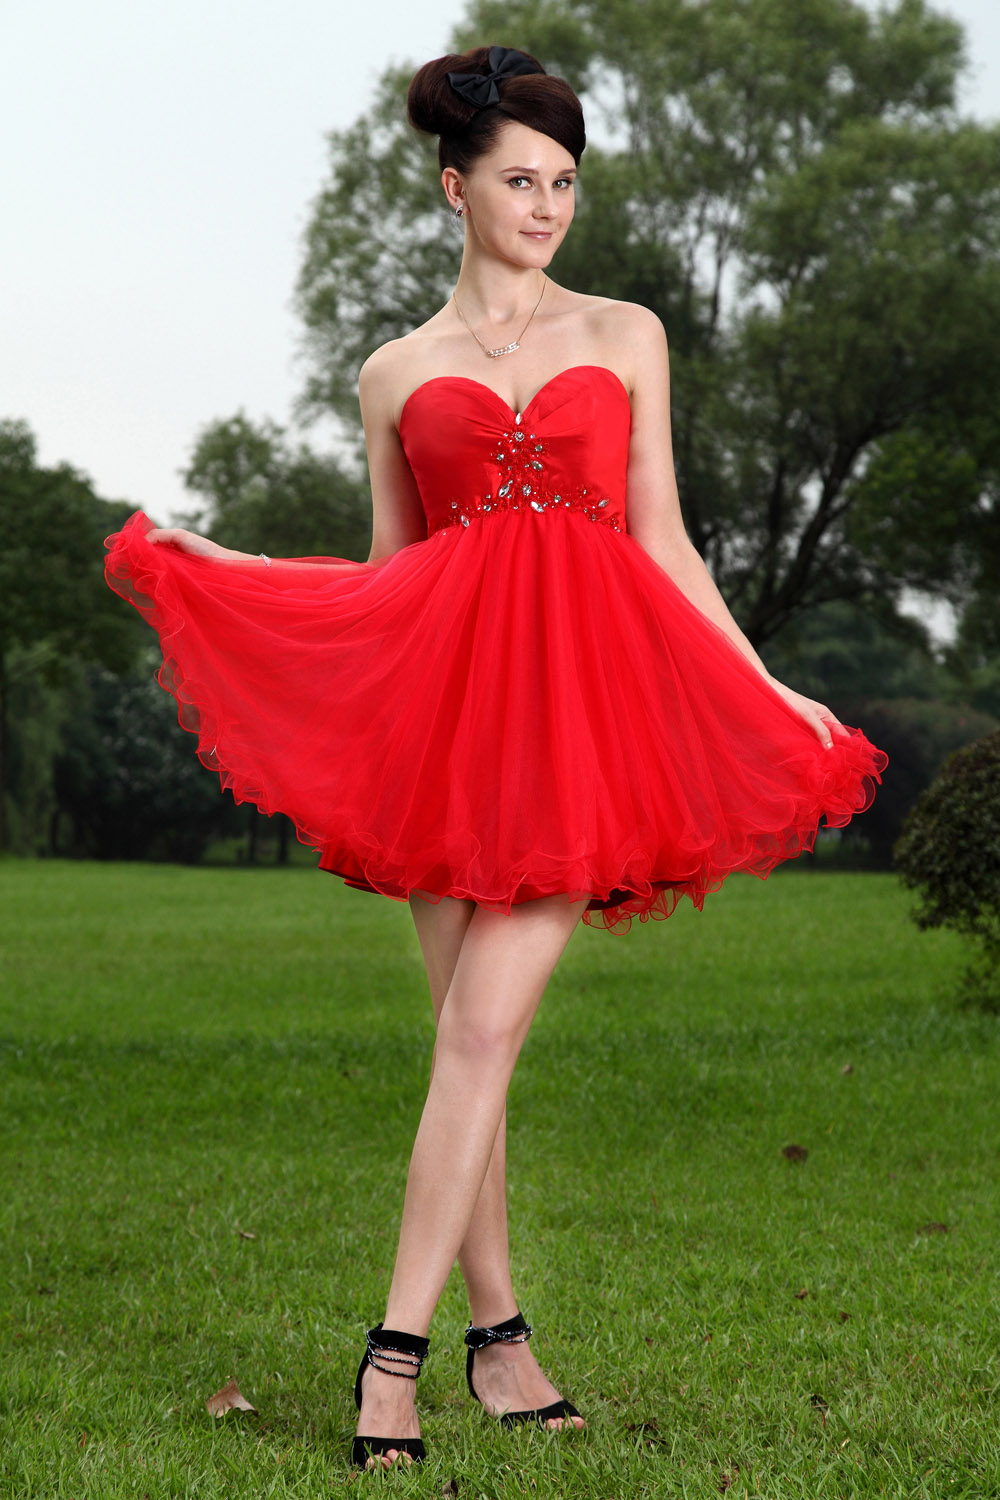 Princess Sweetheart Knee-length Tulle Homecoming Dress